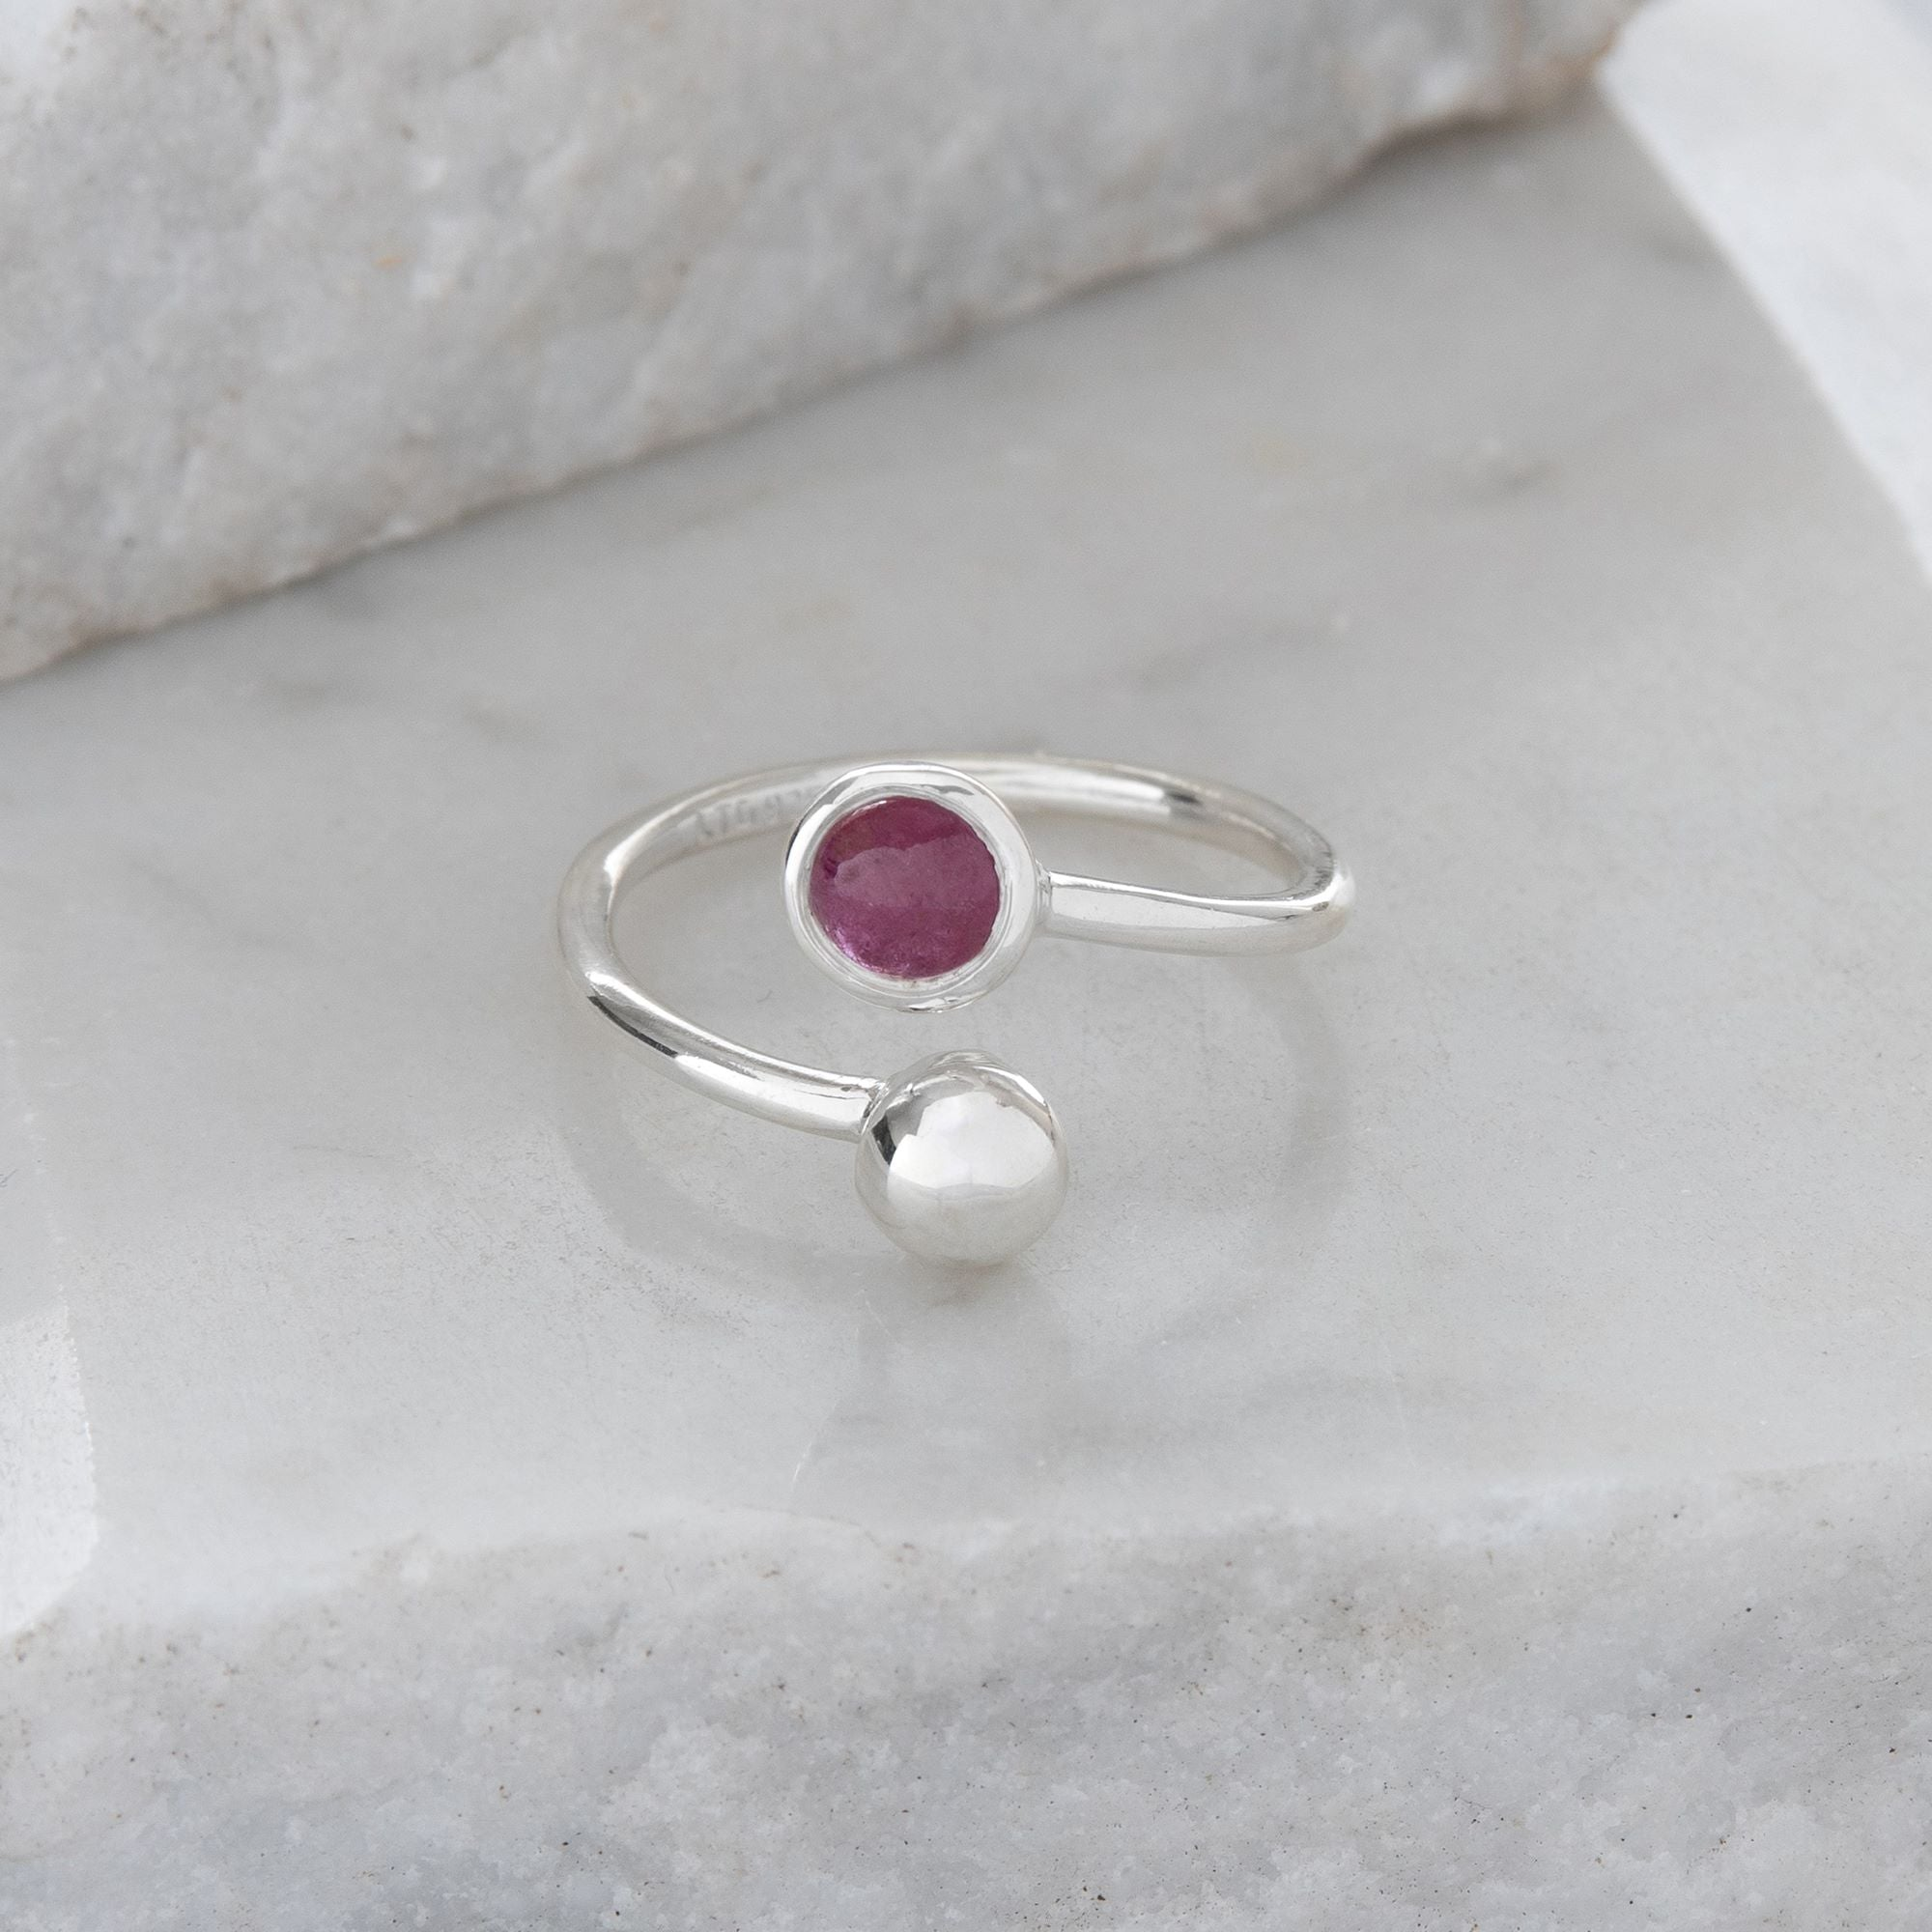 Adjustable Birthstone Ring July: Sterling Silver and Ruby